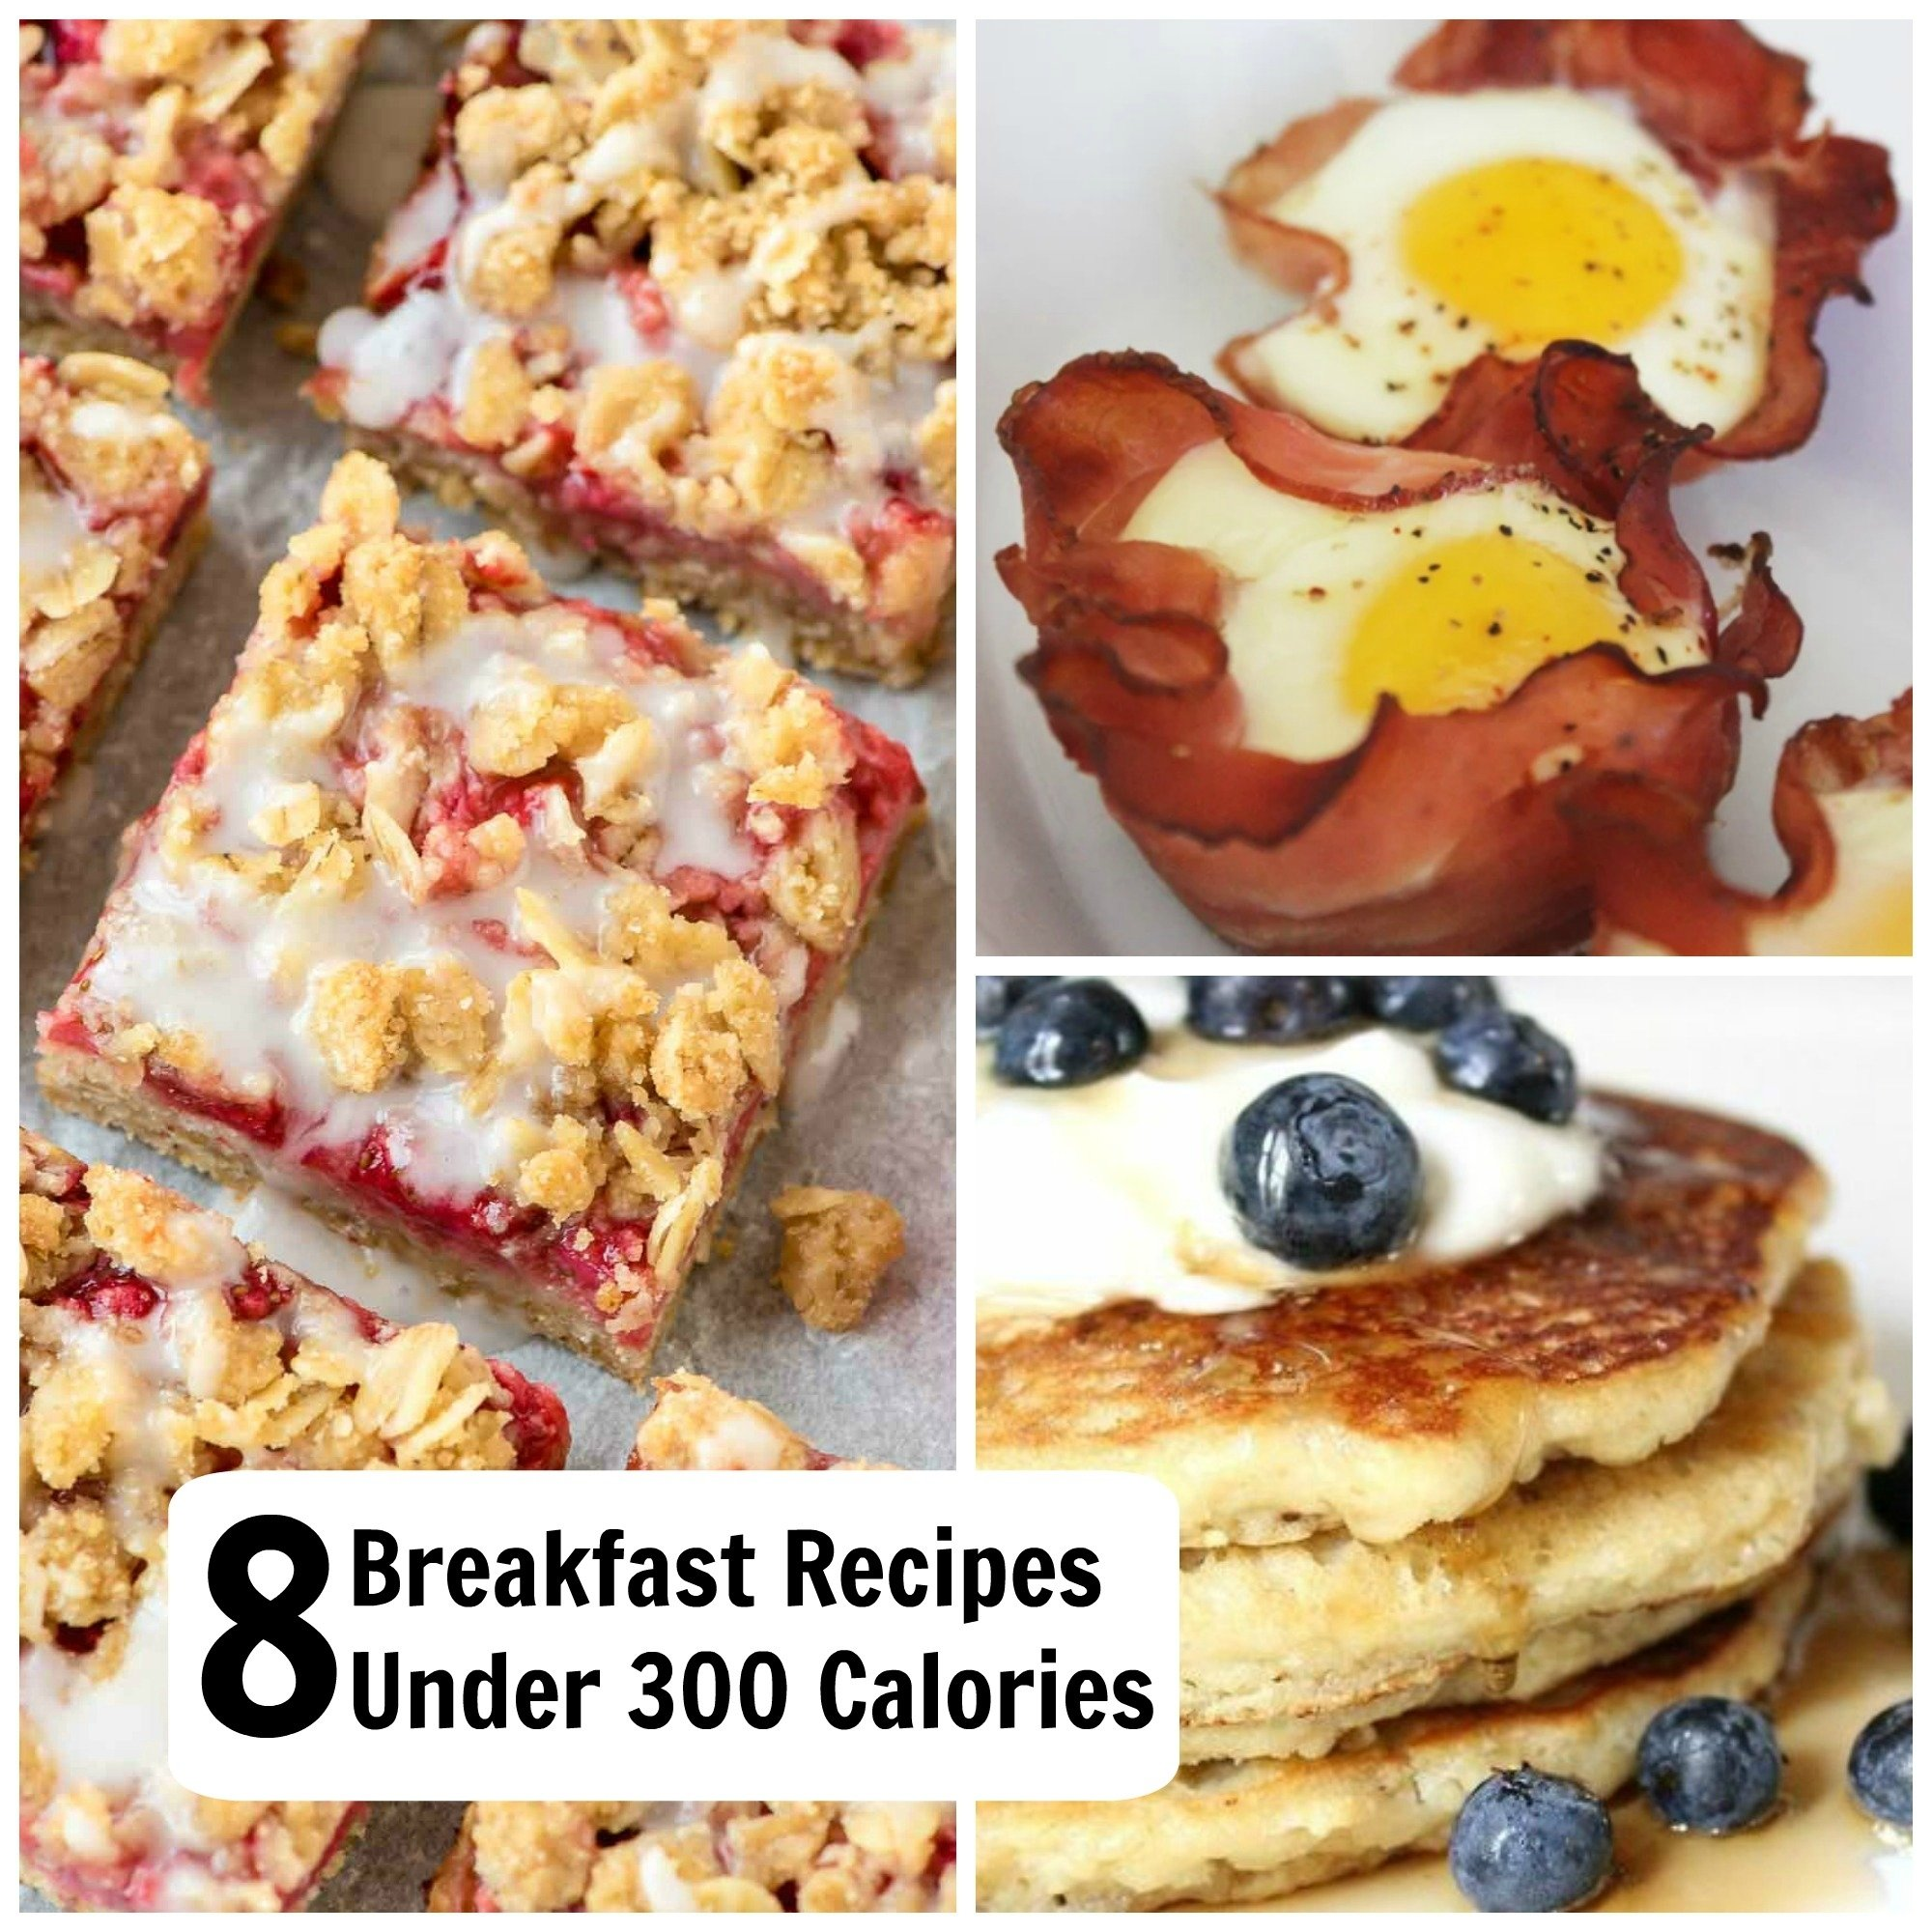 10 Fabulous Breakfast Ideas Under 300 Calories 8 breakfast recipes under 300 calories sarah scoop